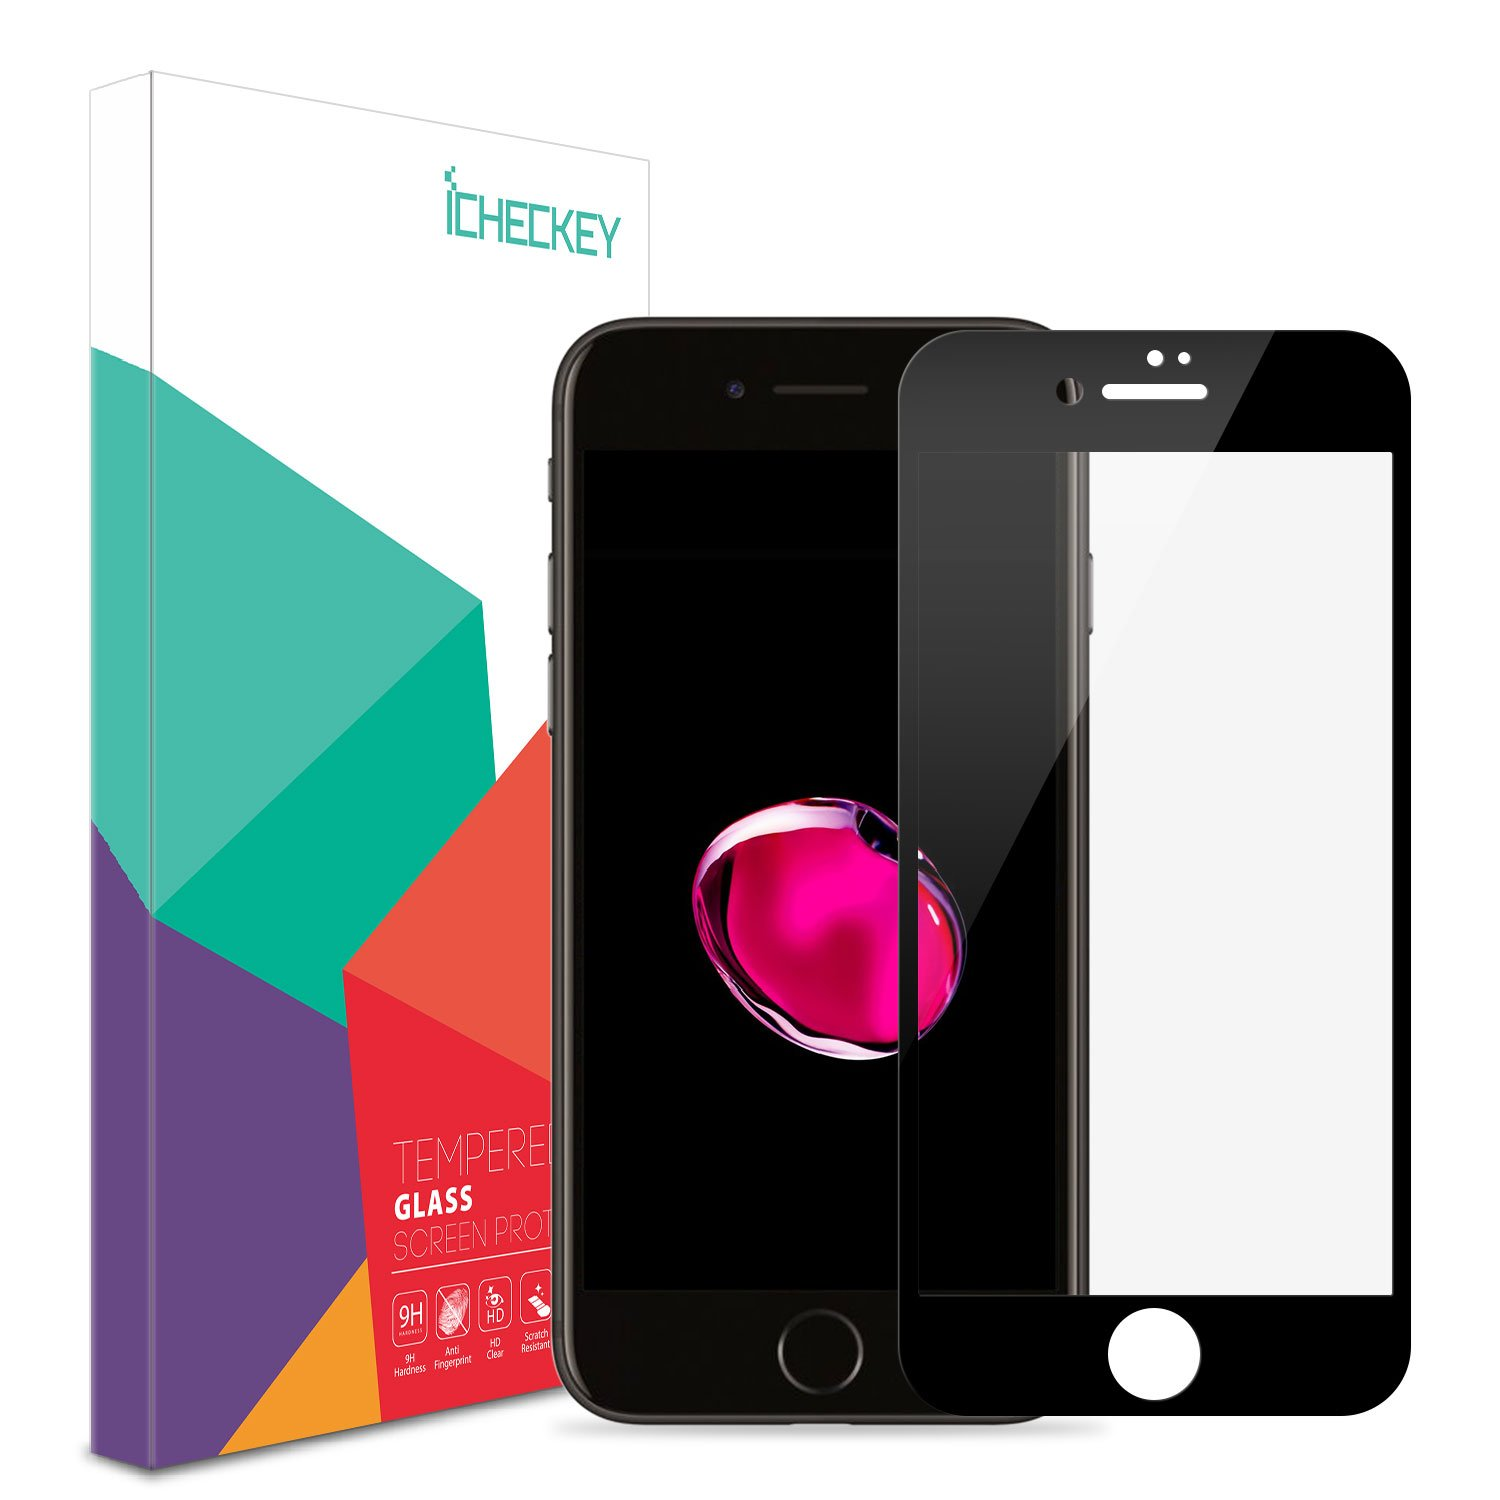 ICHECKEY iPhone 7 Screen Protector Reinforced 2.5D Full Coverage Tempered Glass Screen Cover Film - Black